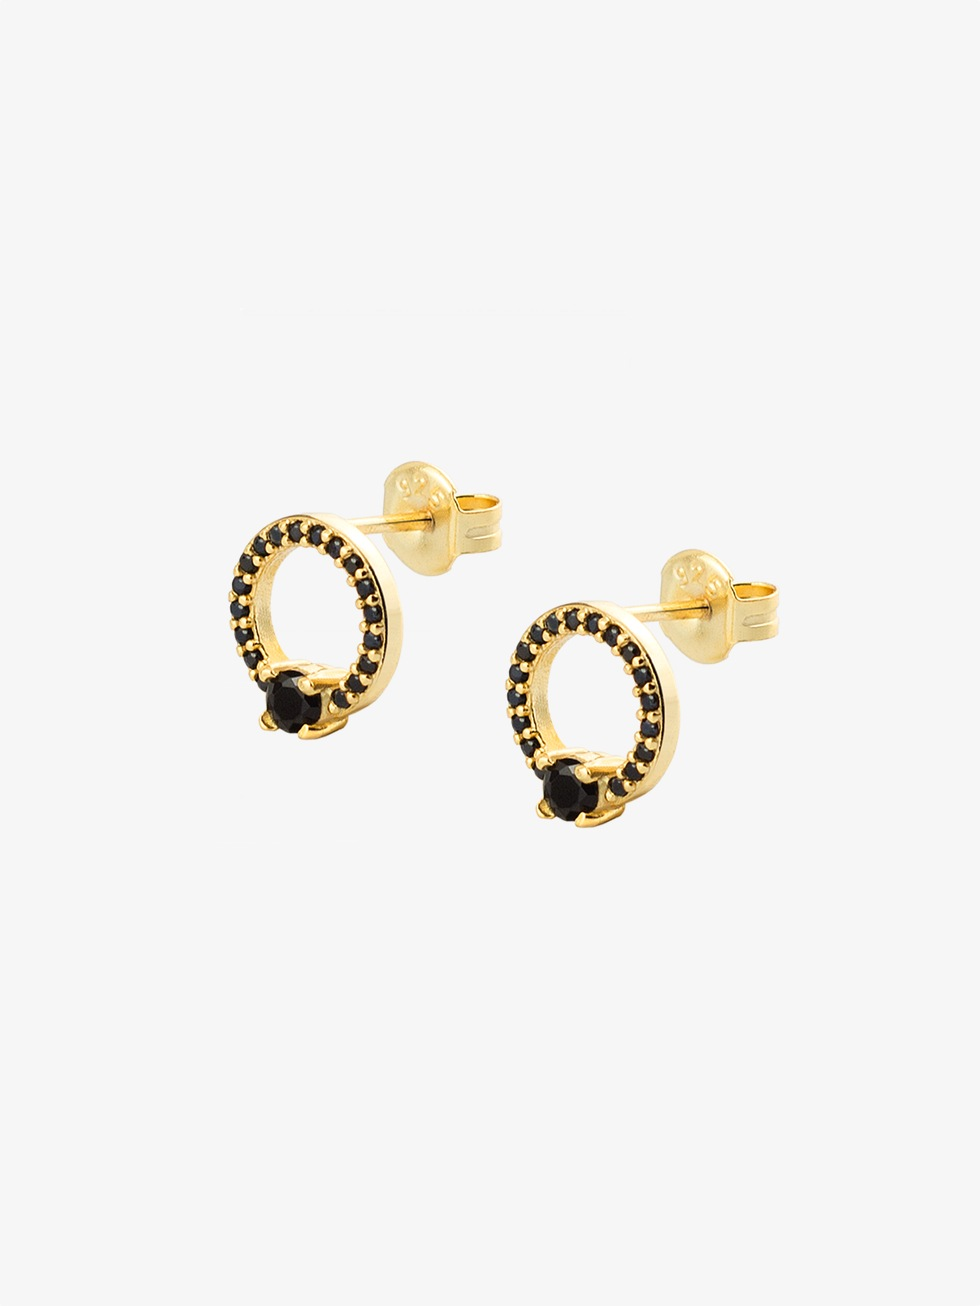 MARIA CZ gold earrings